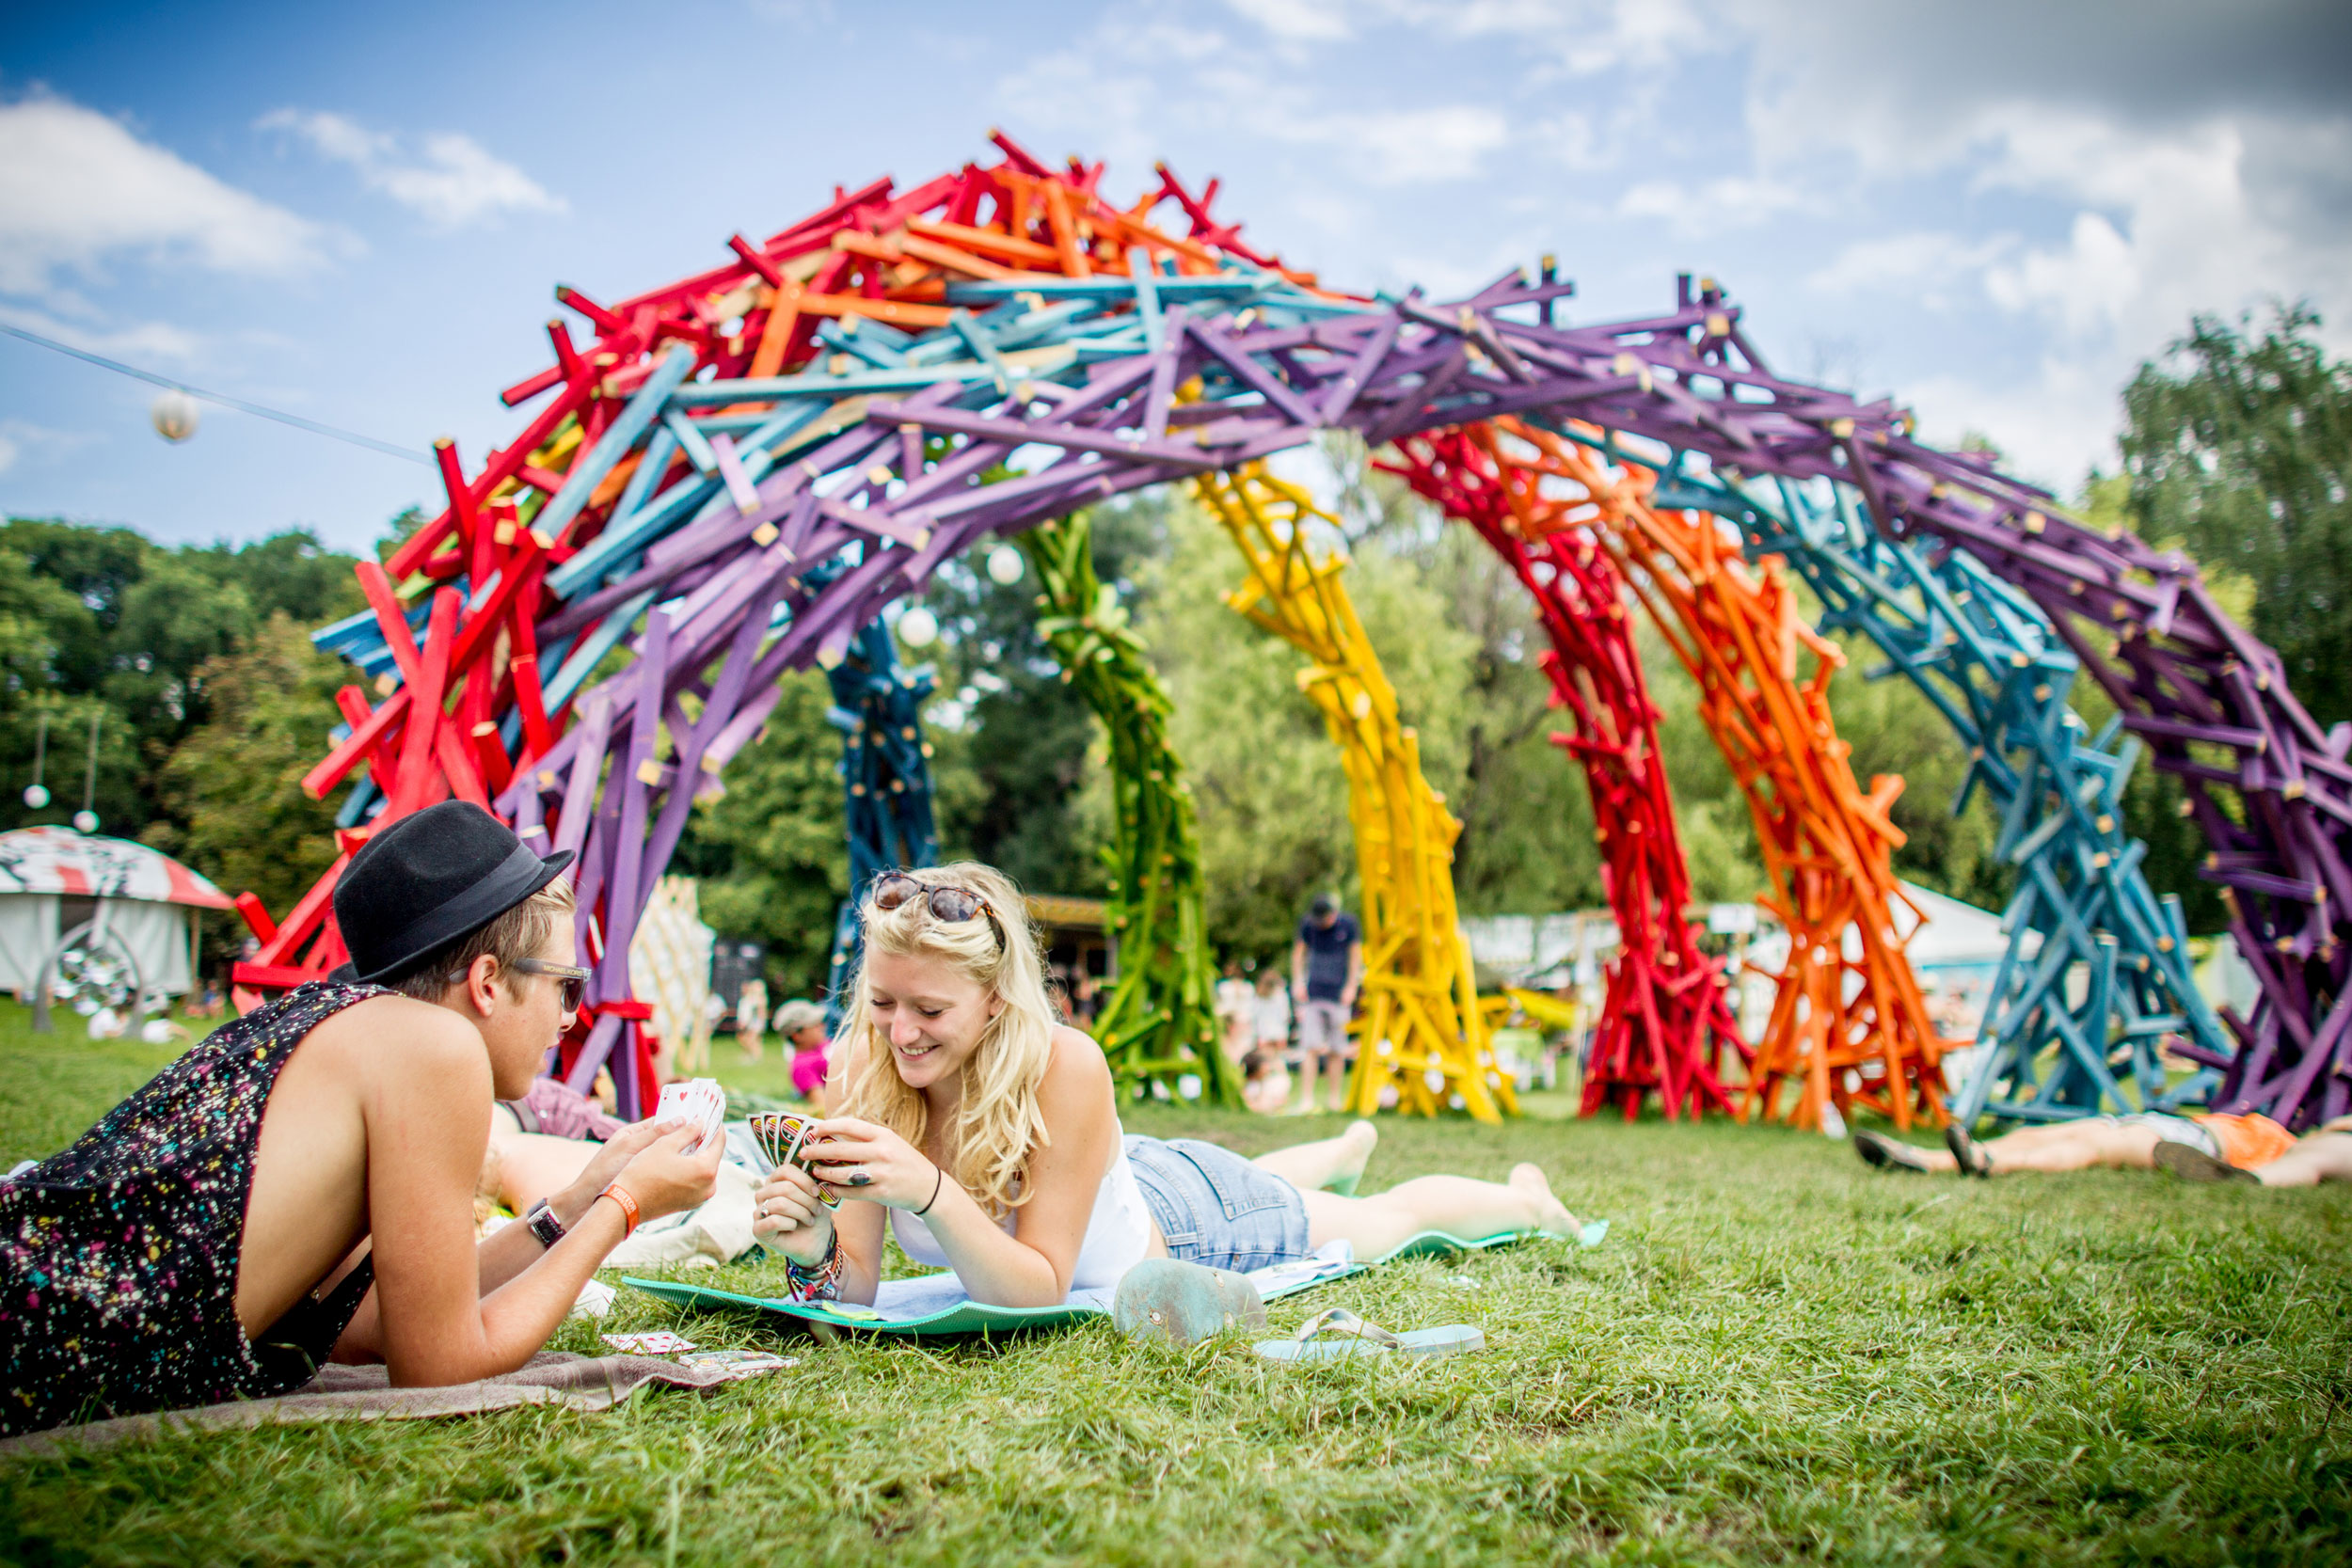 Friends relax under the rainbow sculpture at Sziget festival